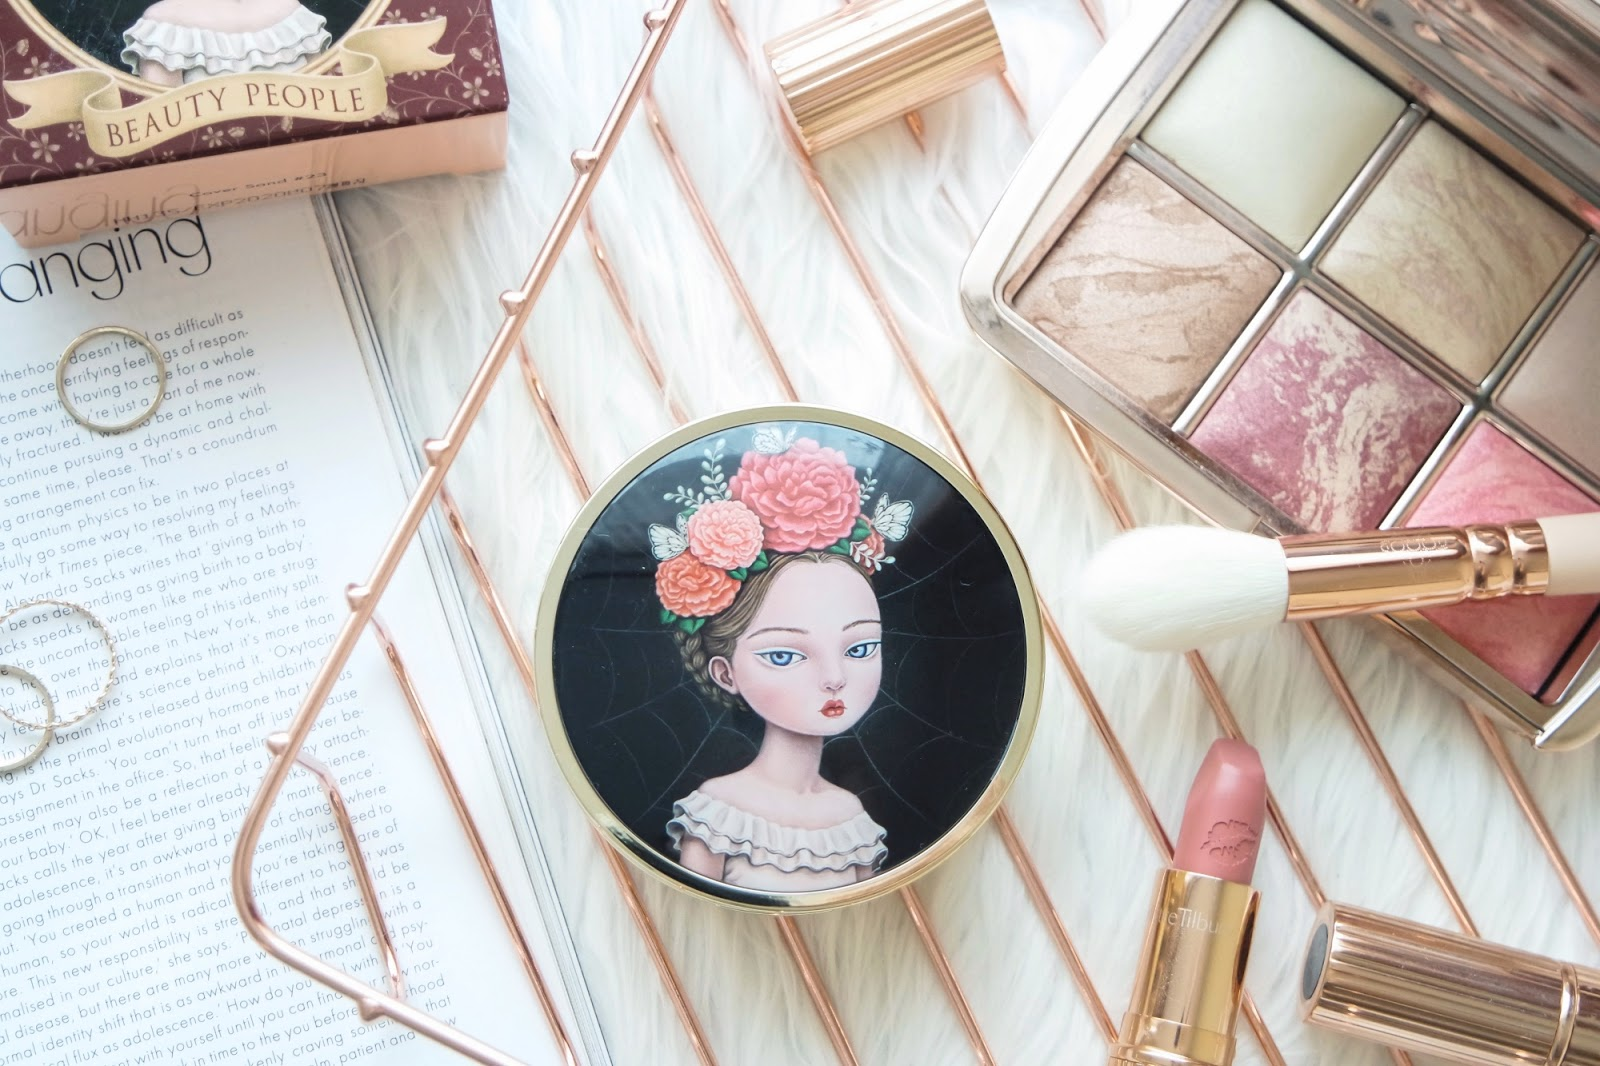 BEAUTY PEOPLE Absolute Lofty Girl Cushion Foundation